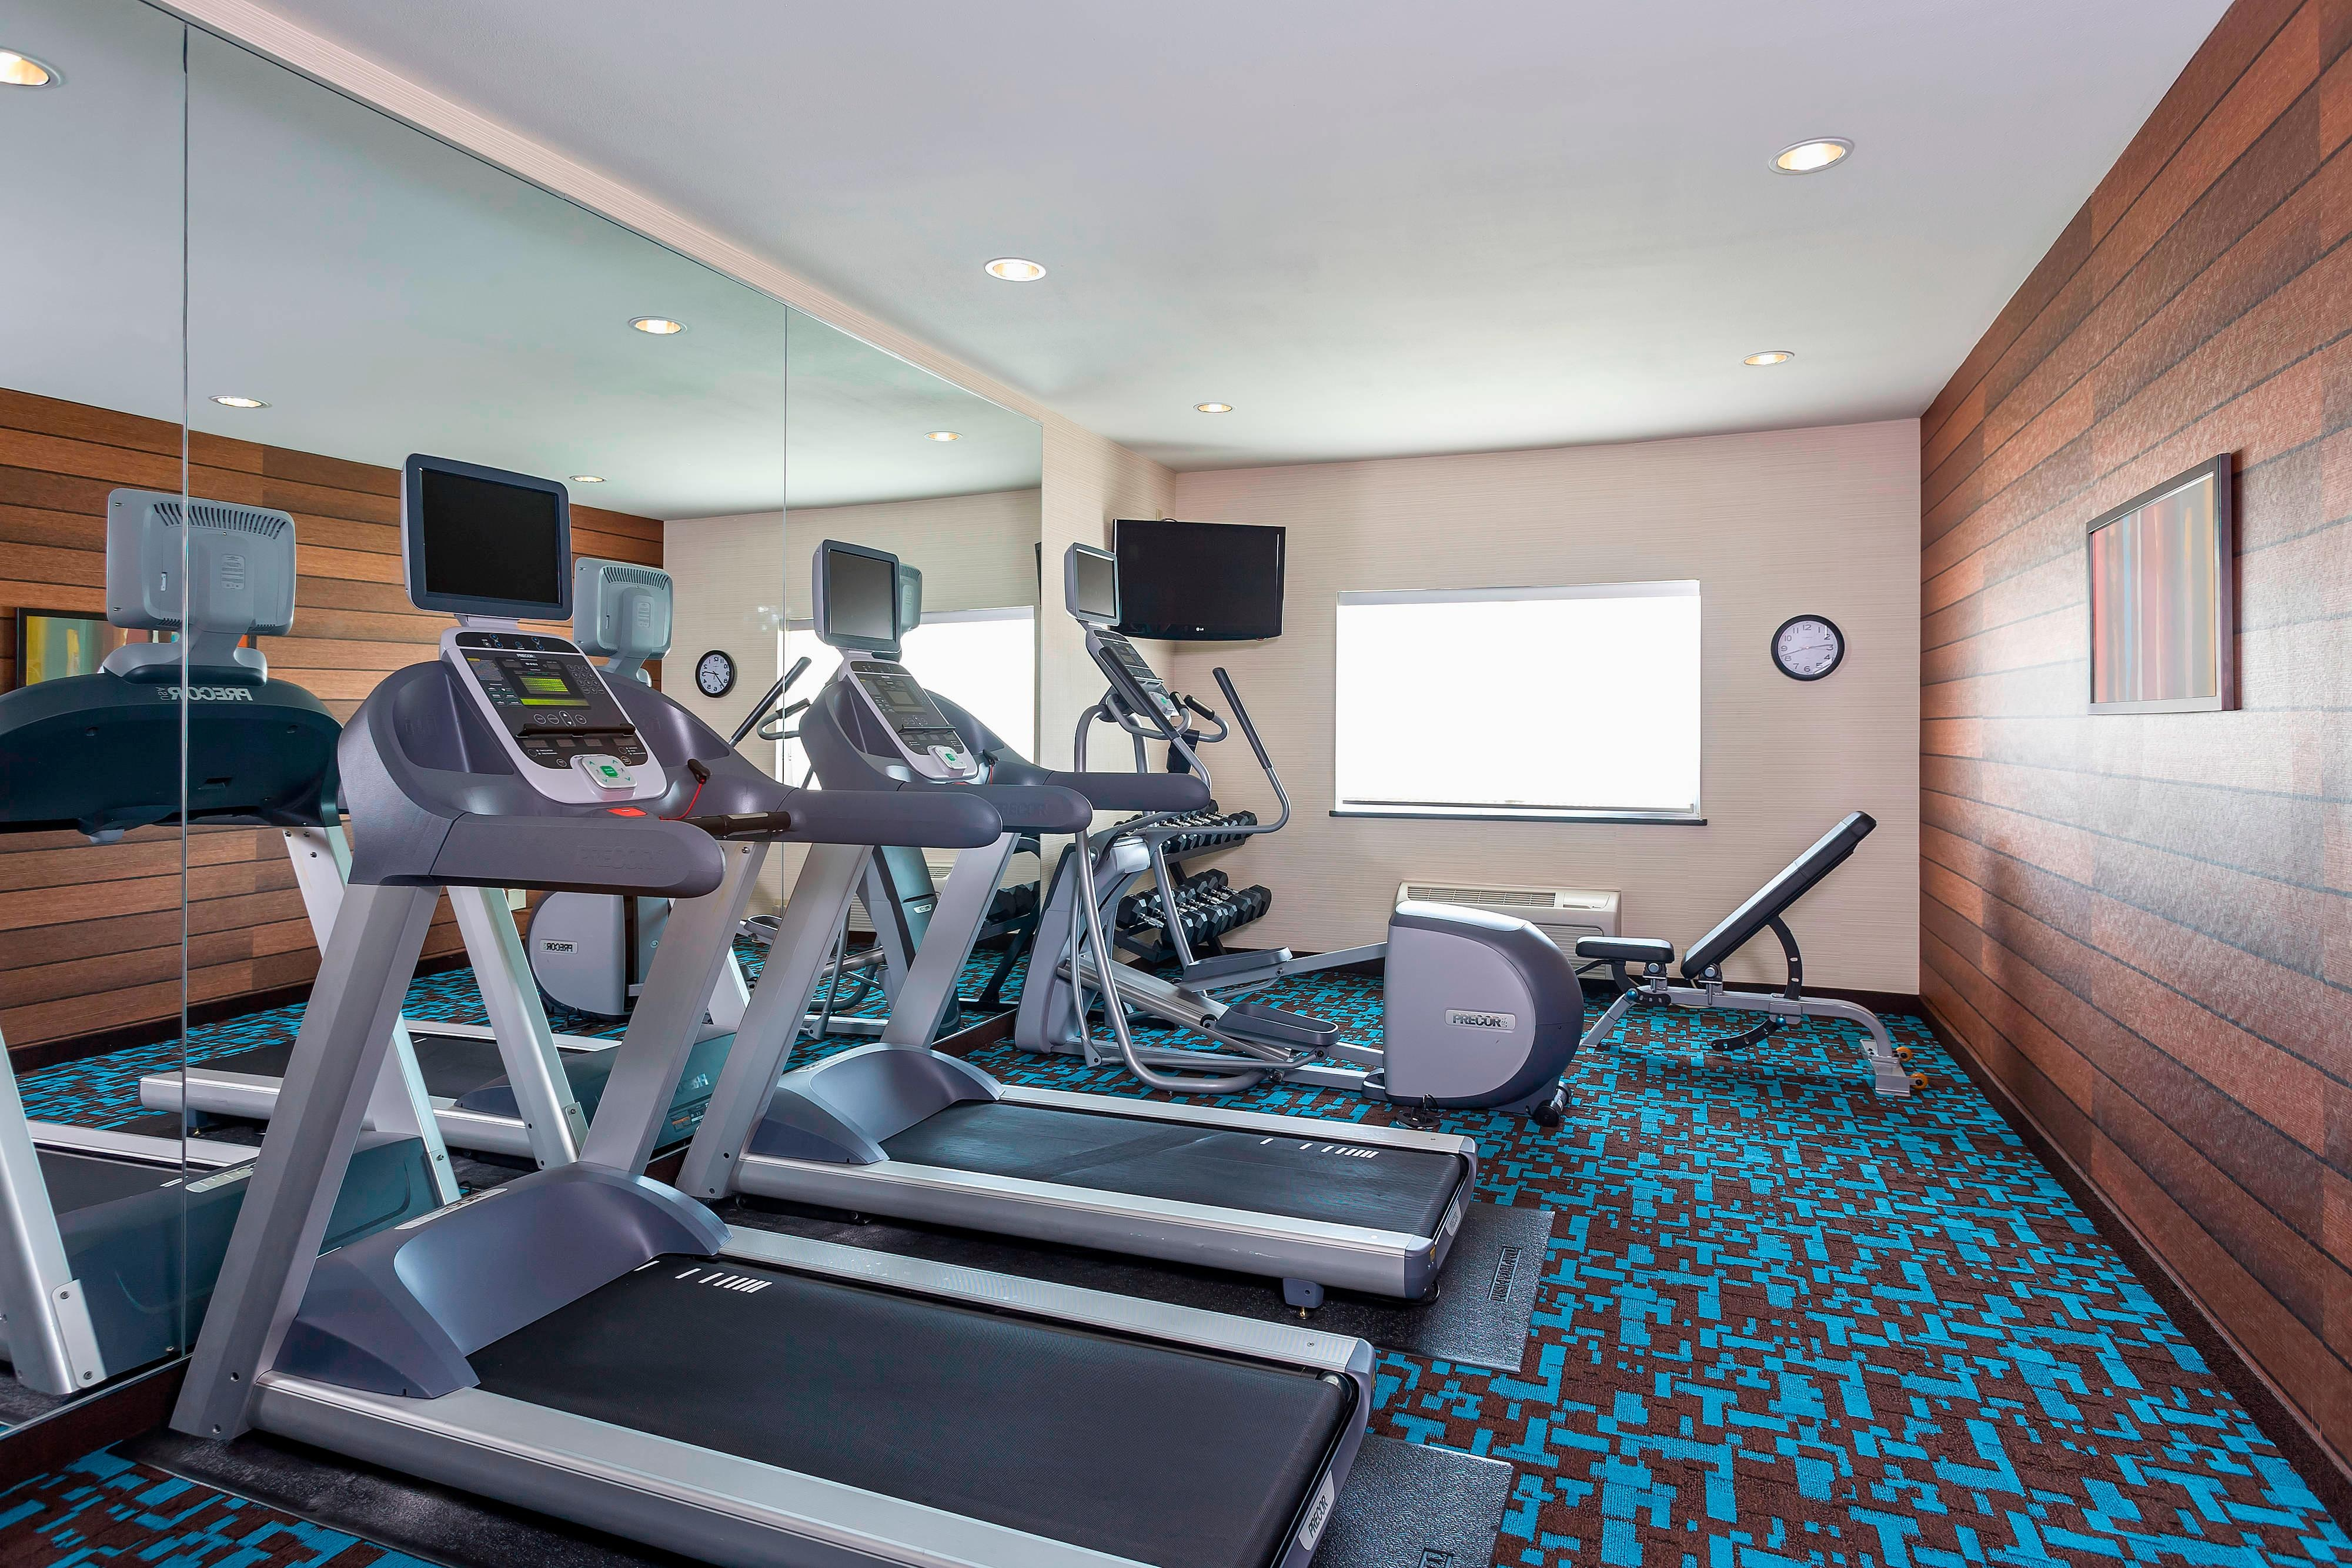 Hotel con gimnasio en North Dallas